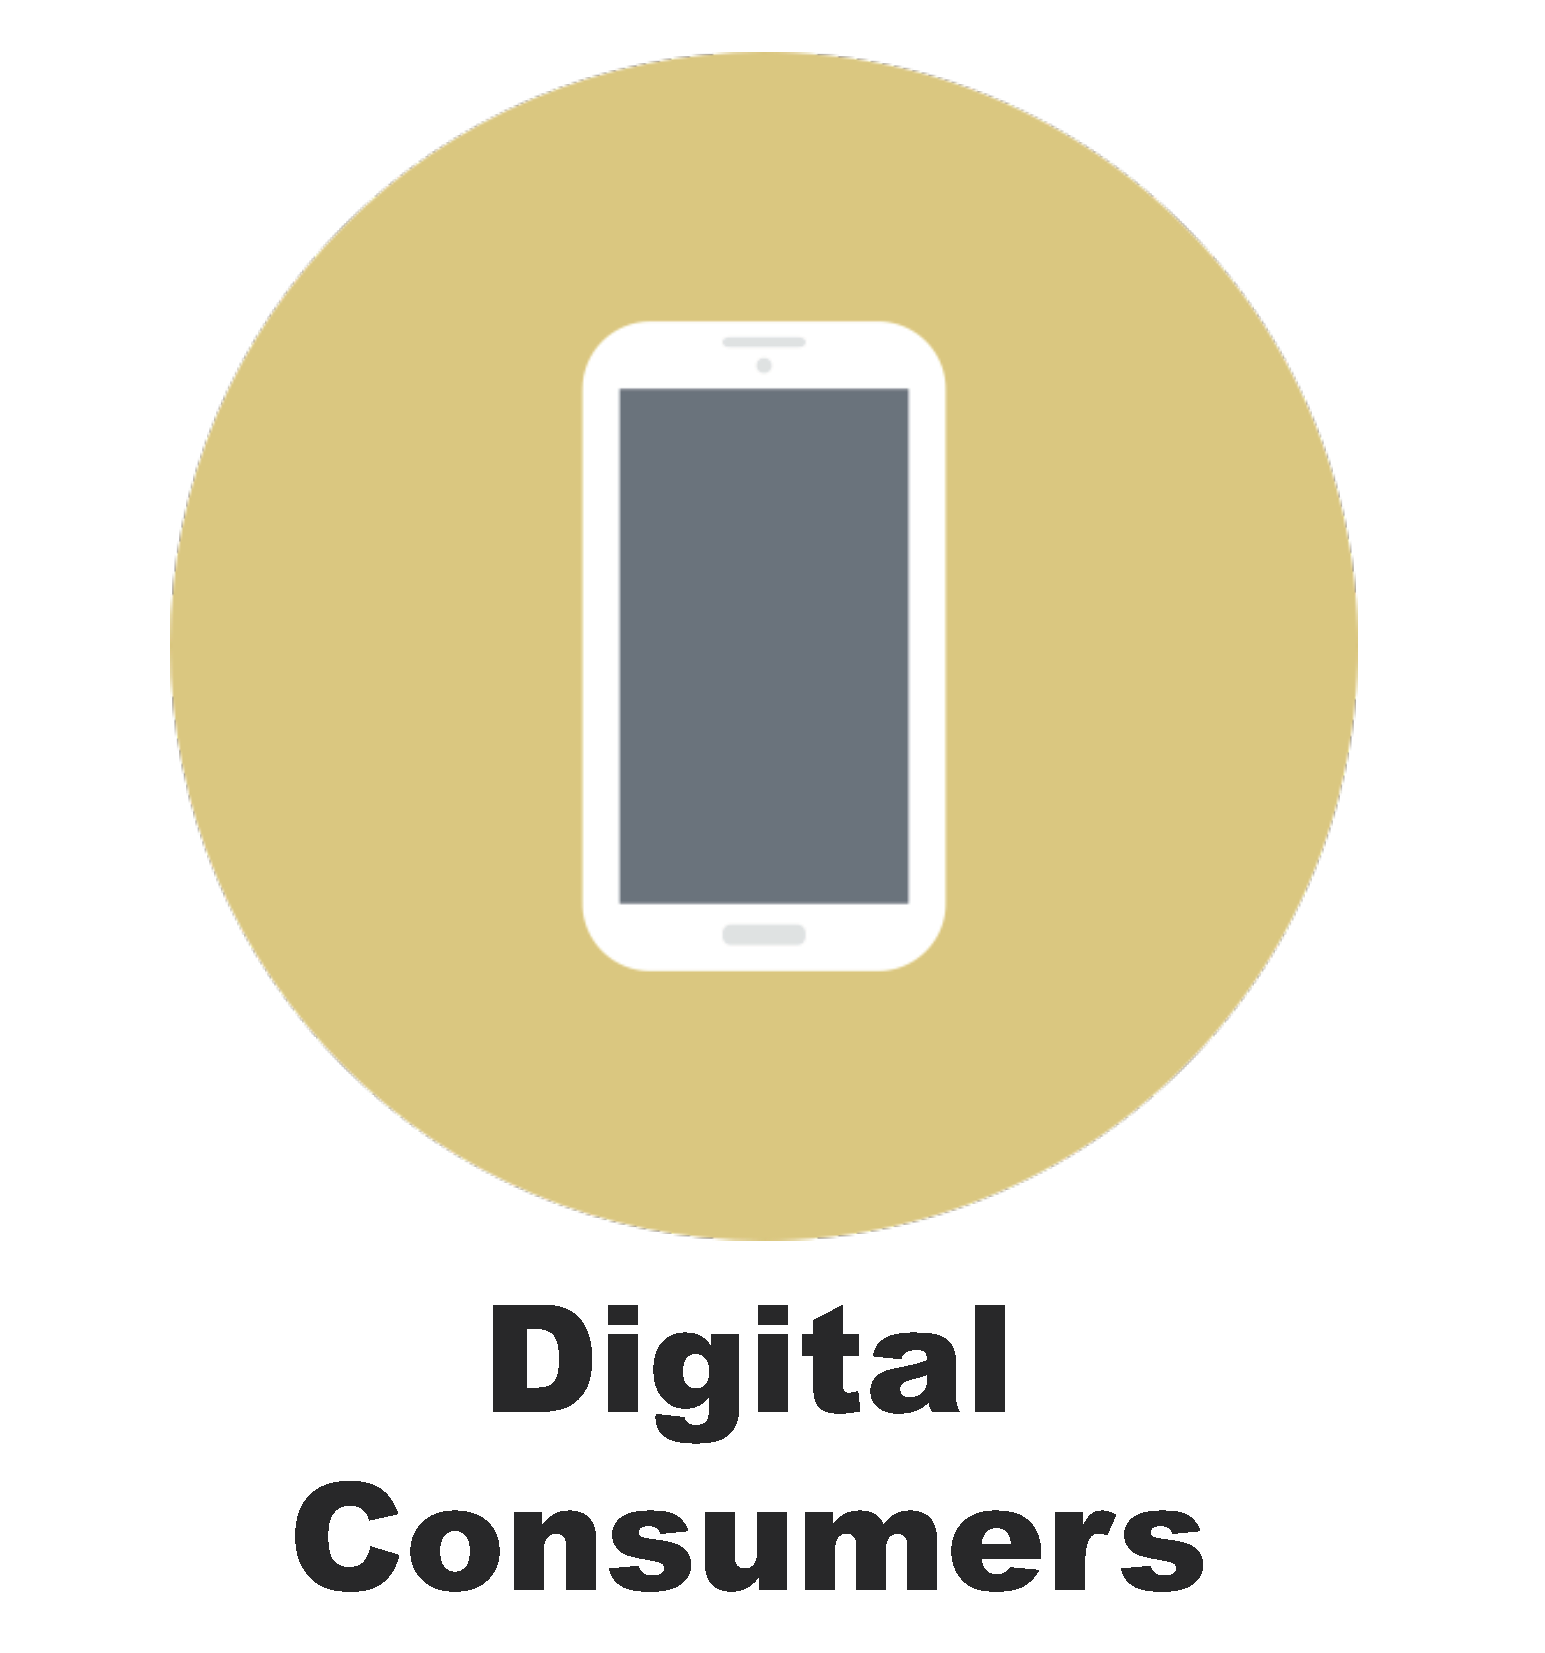 Digital consumers link